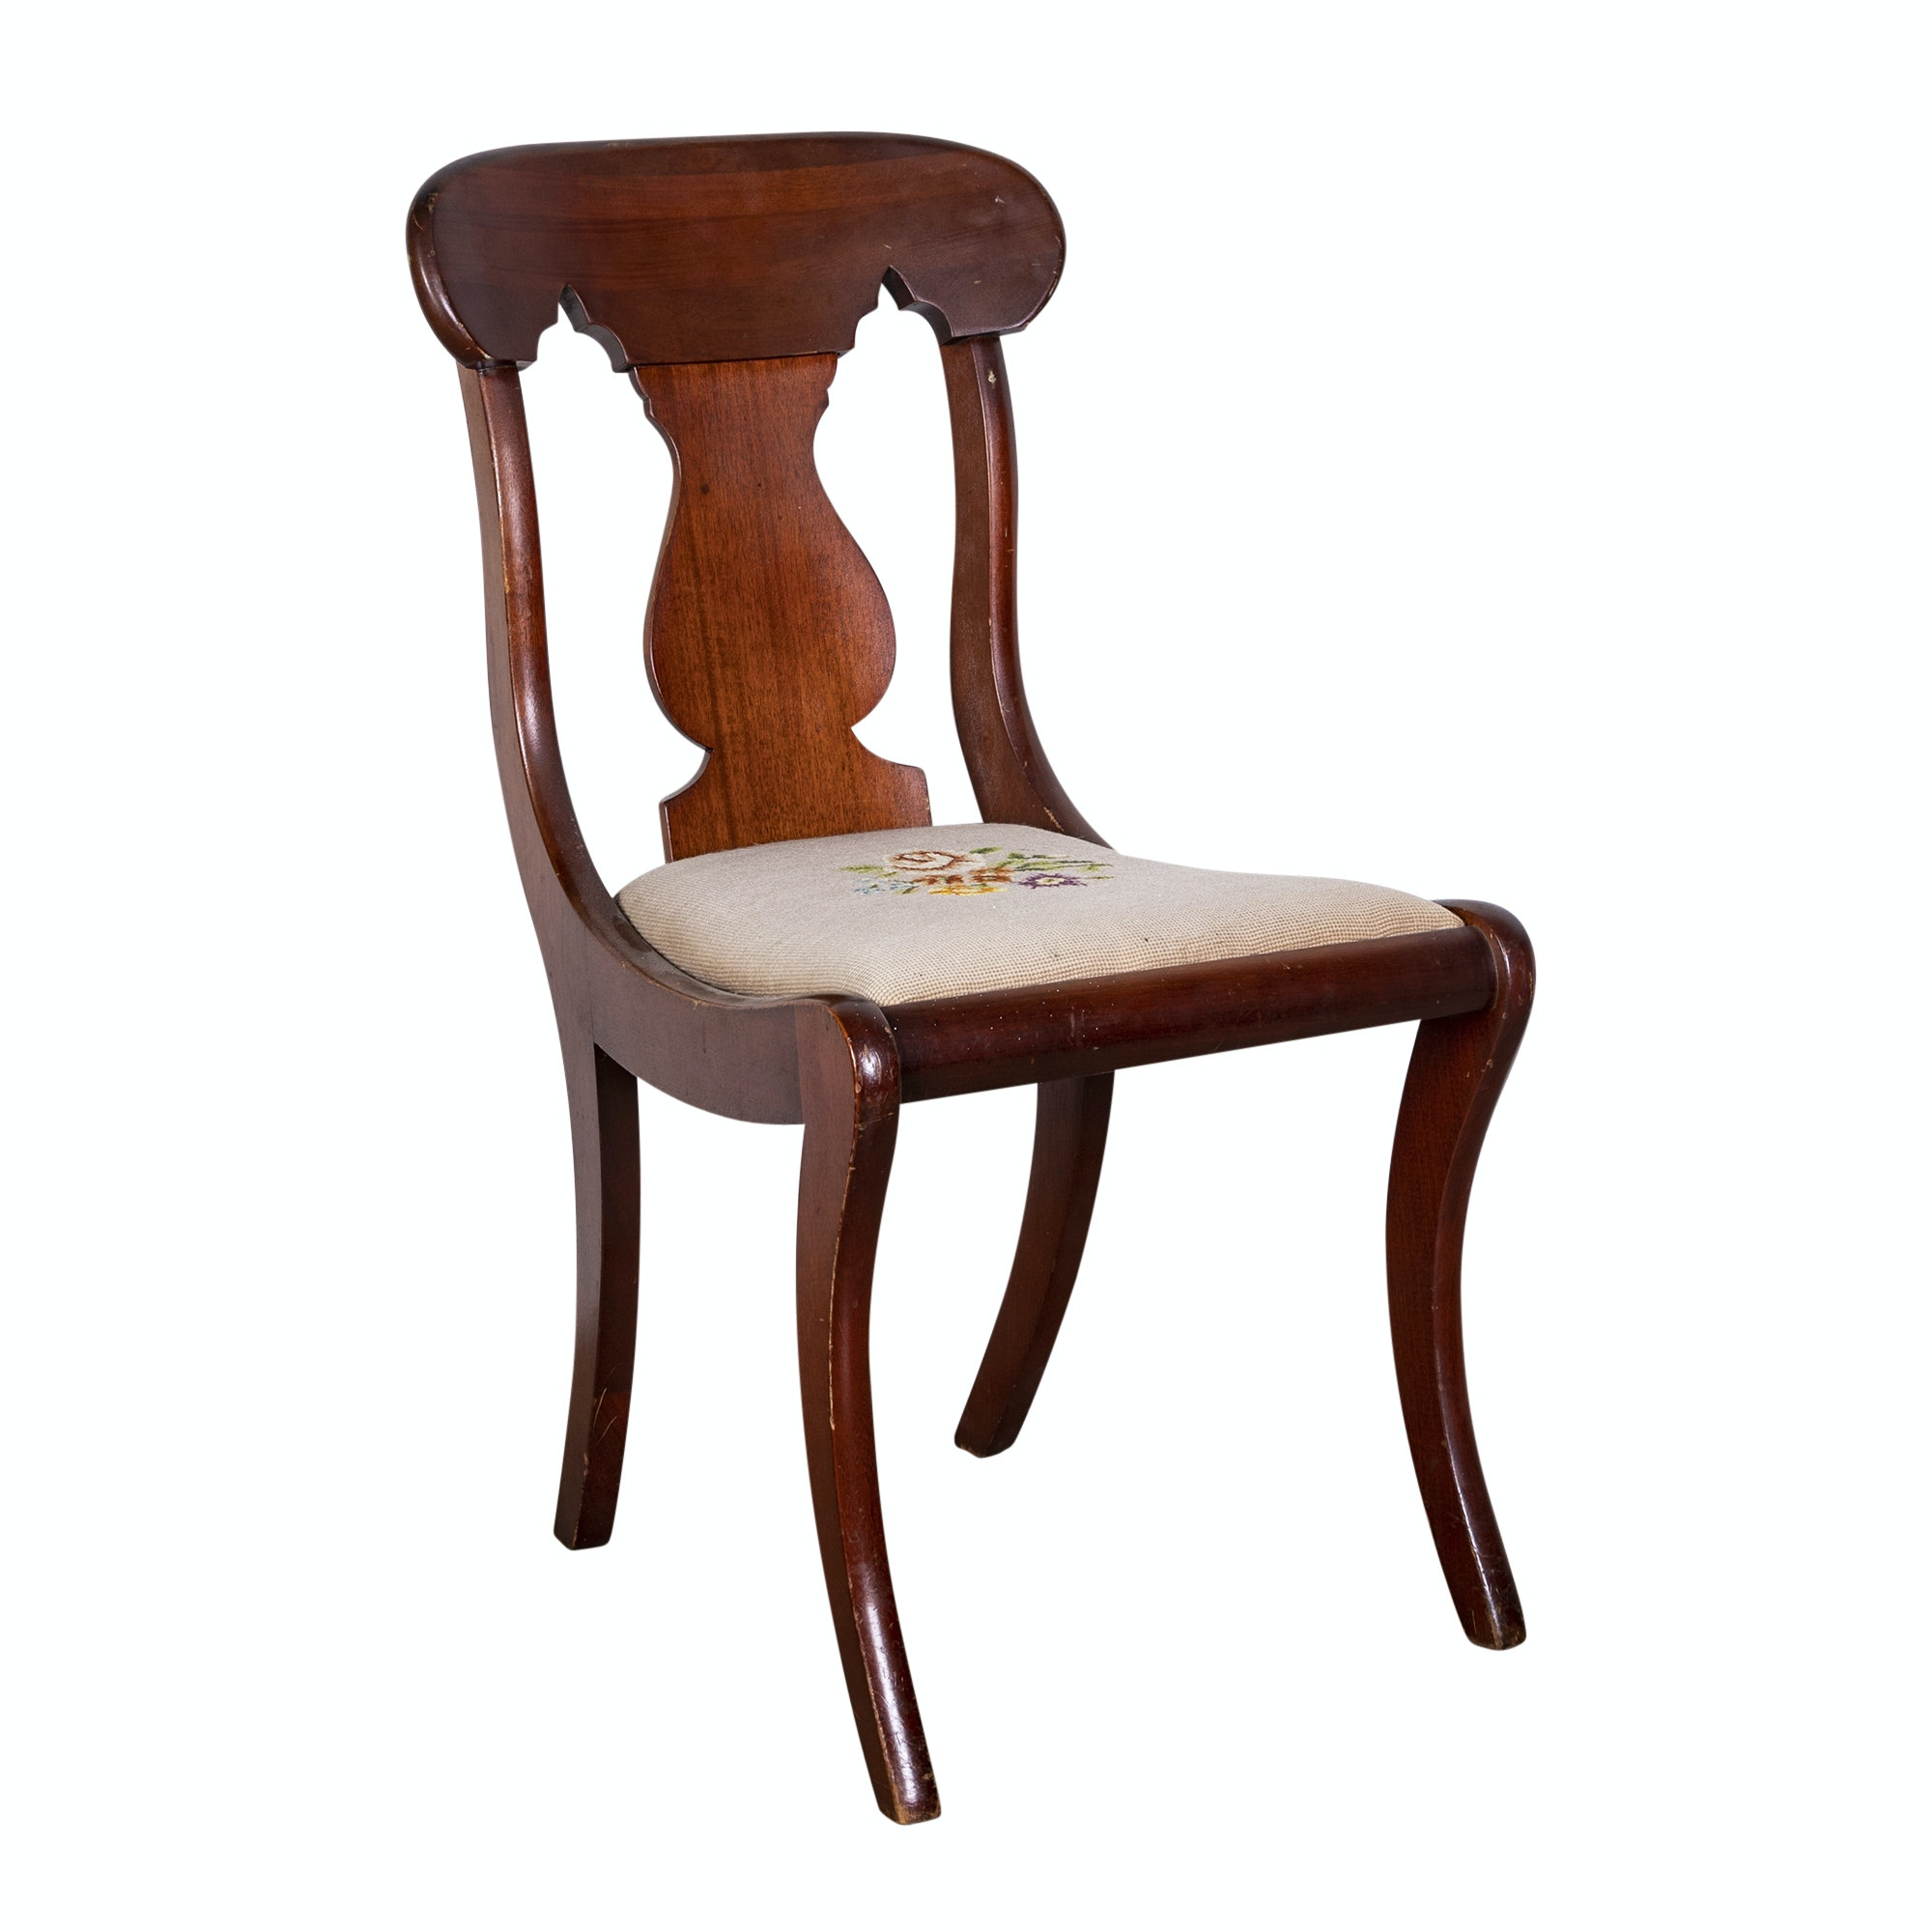 Federal Style Mahogany Vase Splat Side Chair, 20th Century